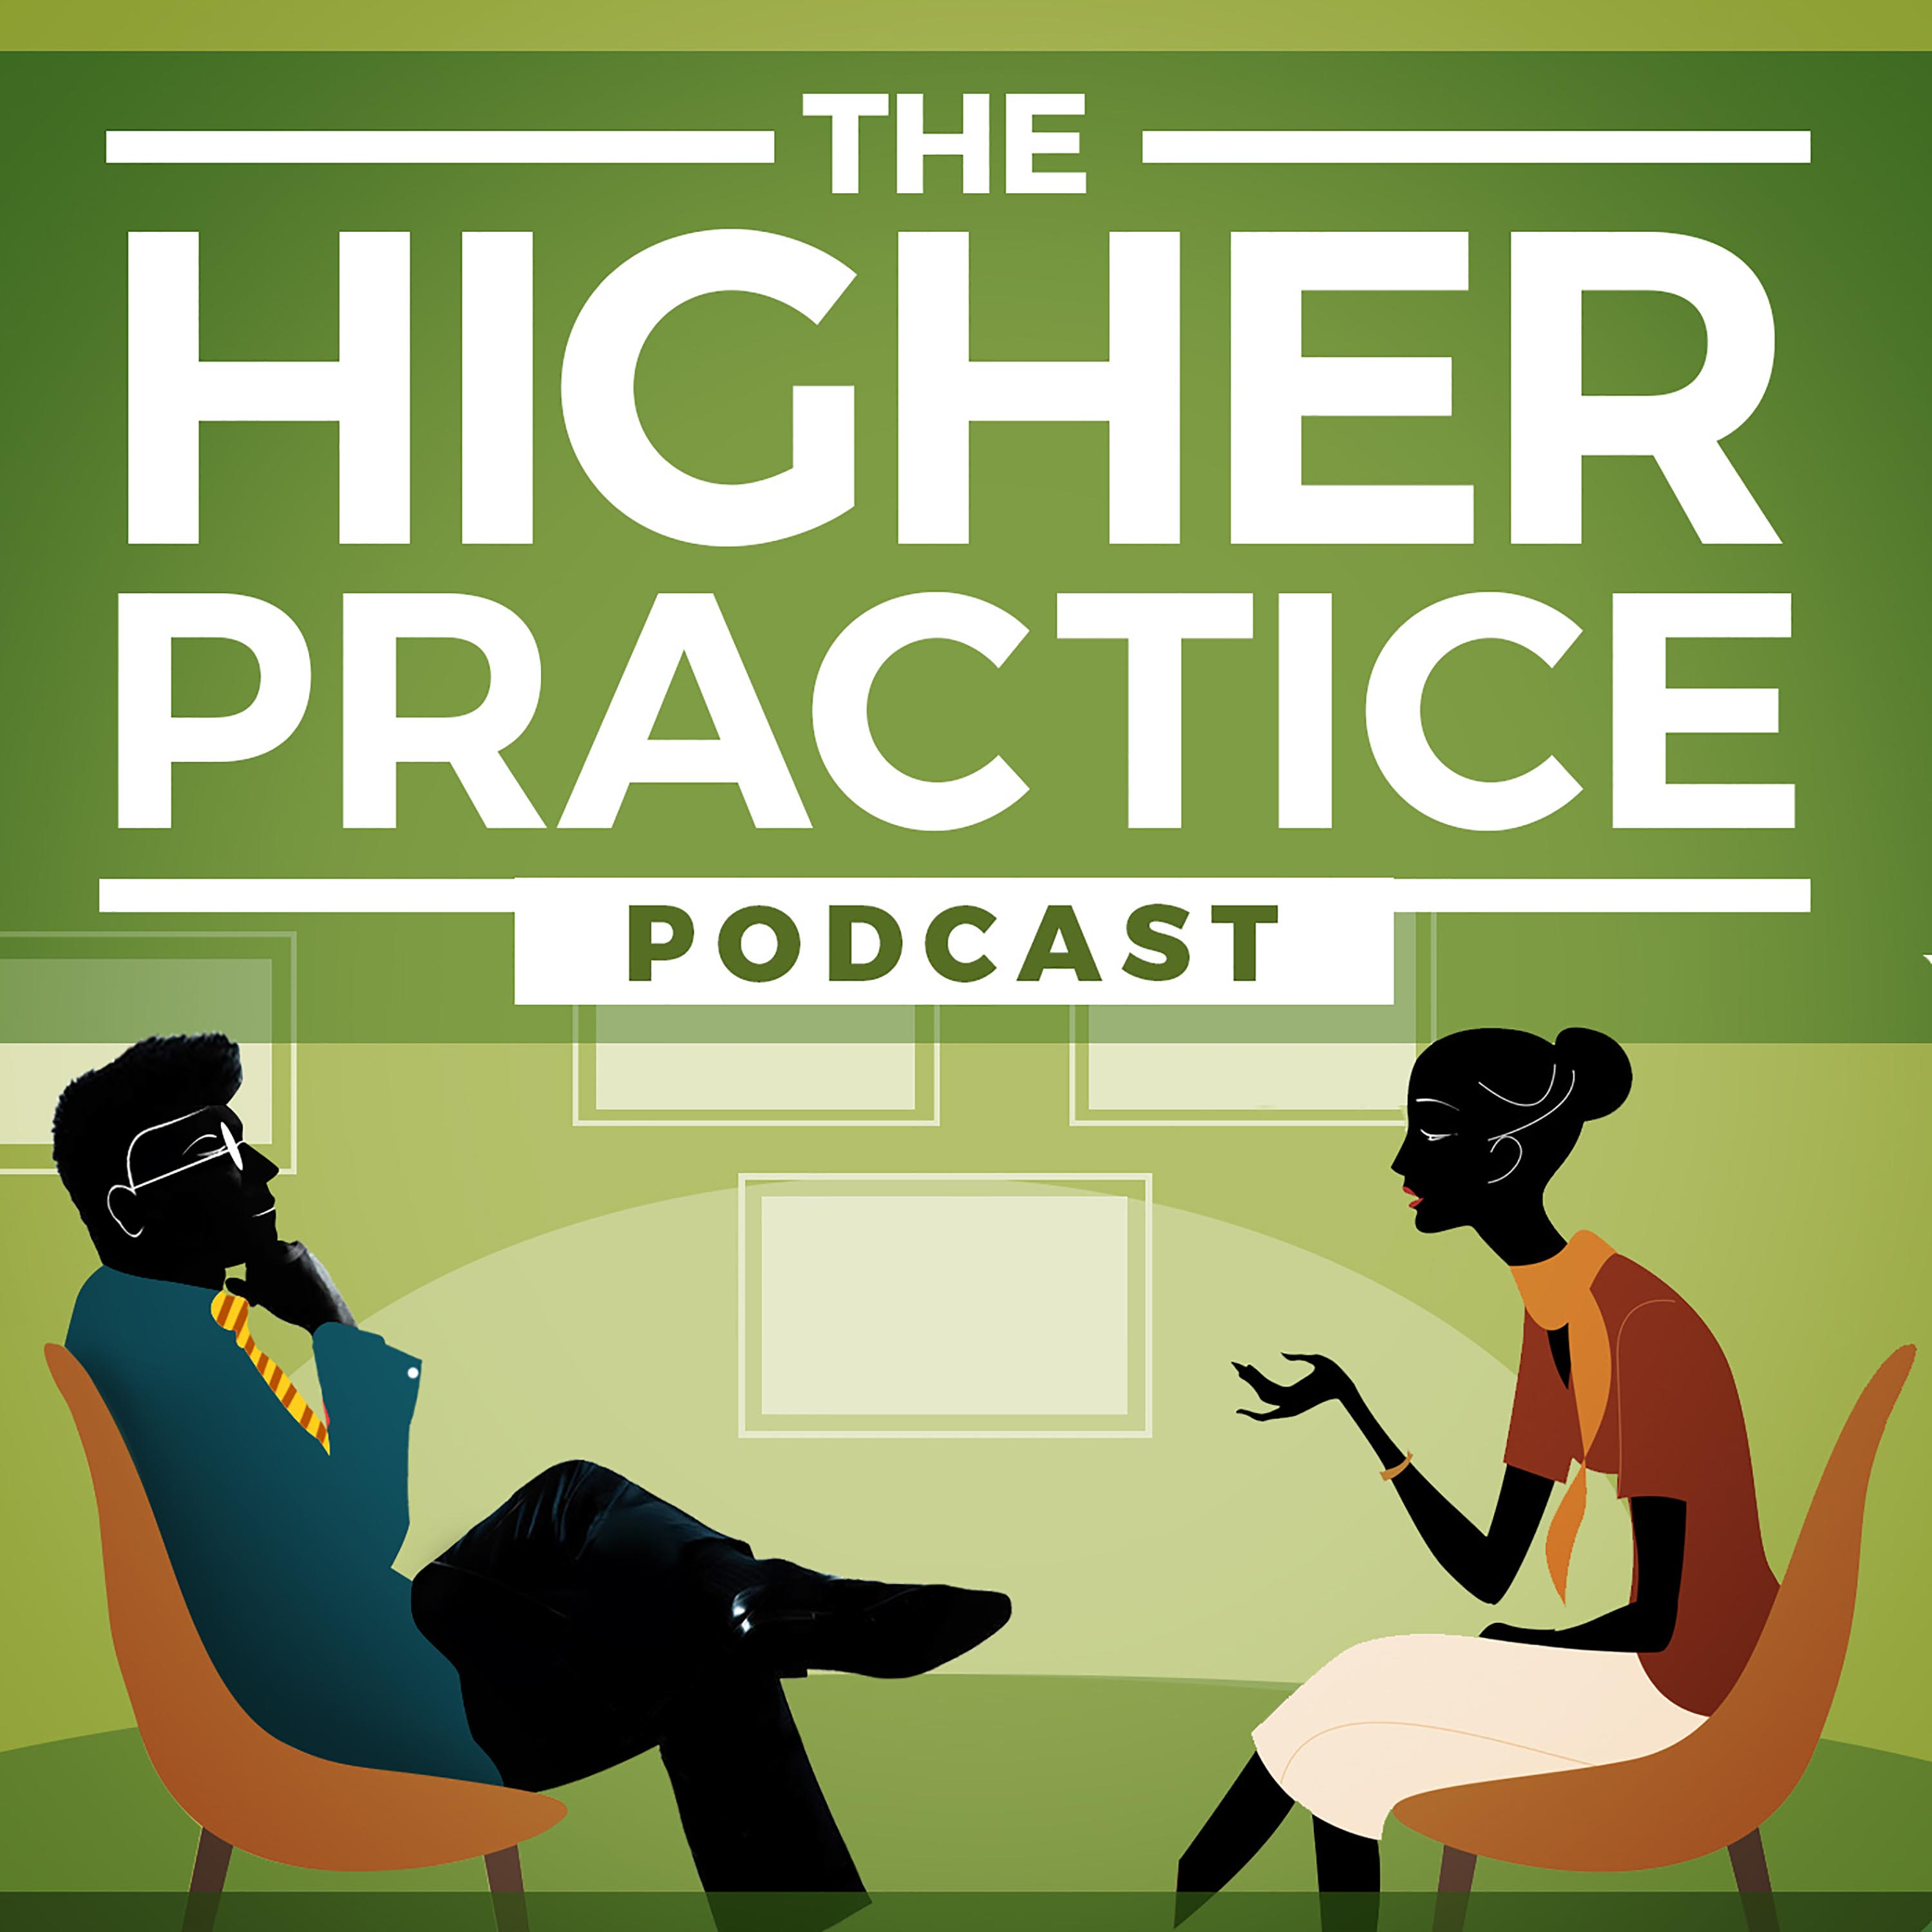 The Higher Practice Podcast for Optimal Mental Health - Is There a Secret to Happiness? - HPP 38